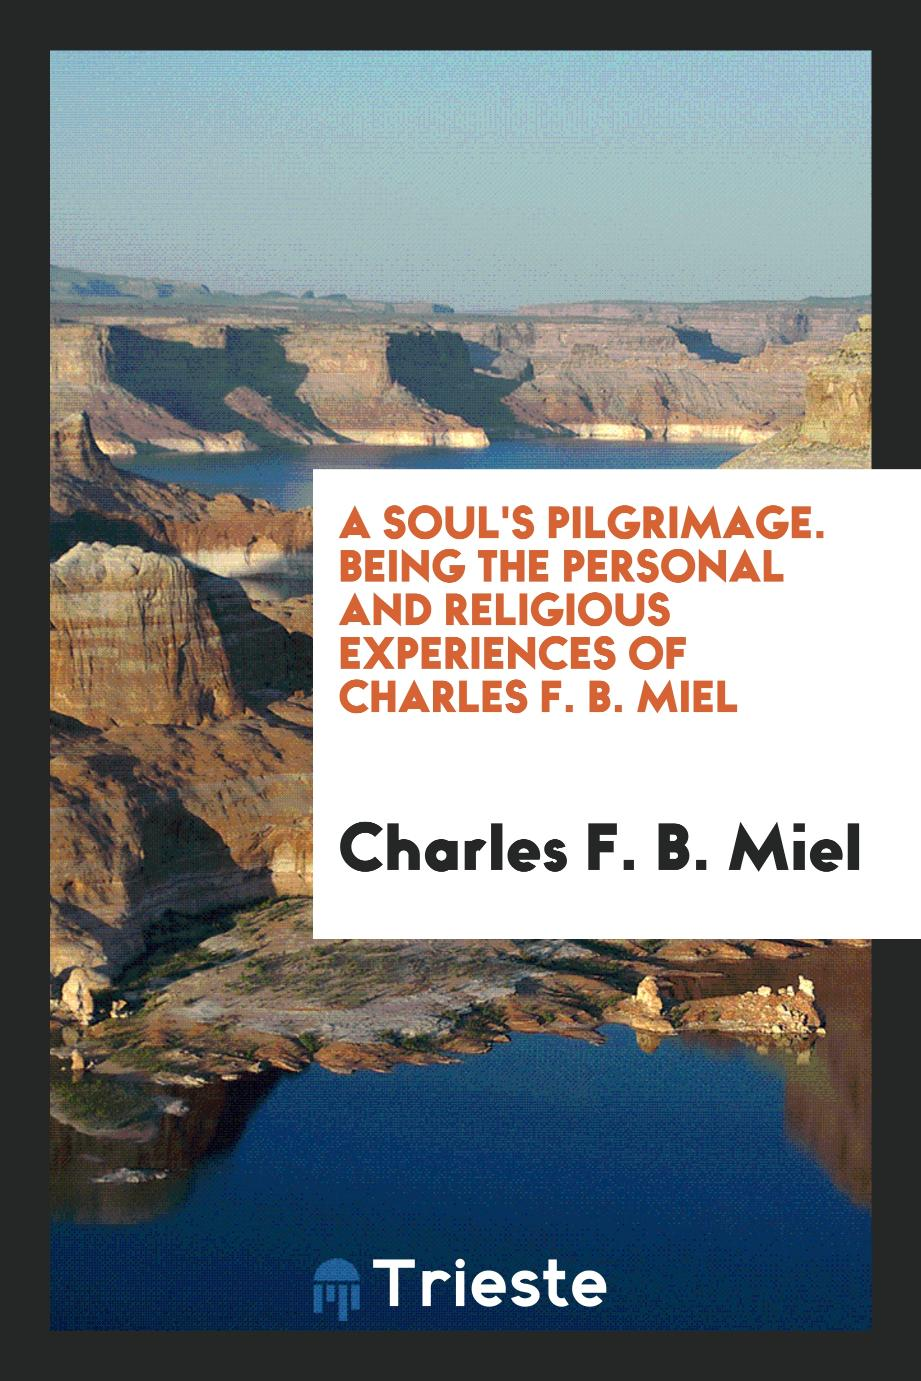 A Soul's Pilgrimage. Being the Personal and Religious Experiences of Charles F. B. Miel